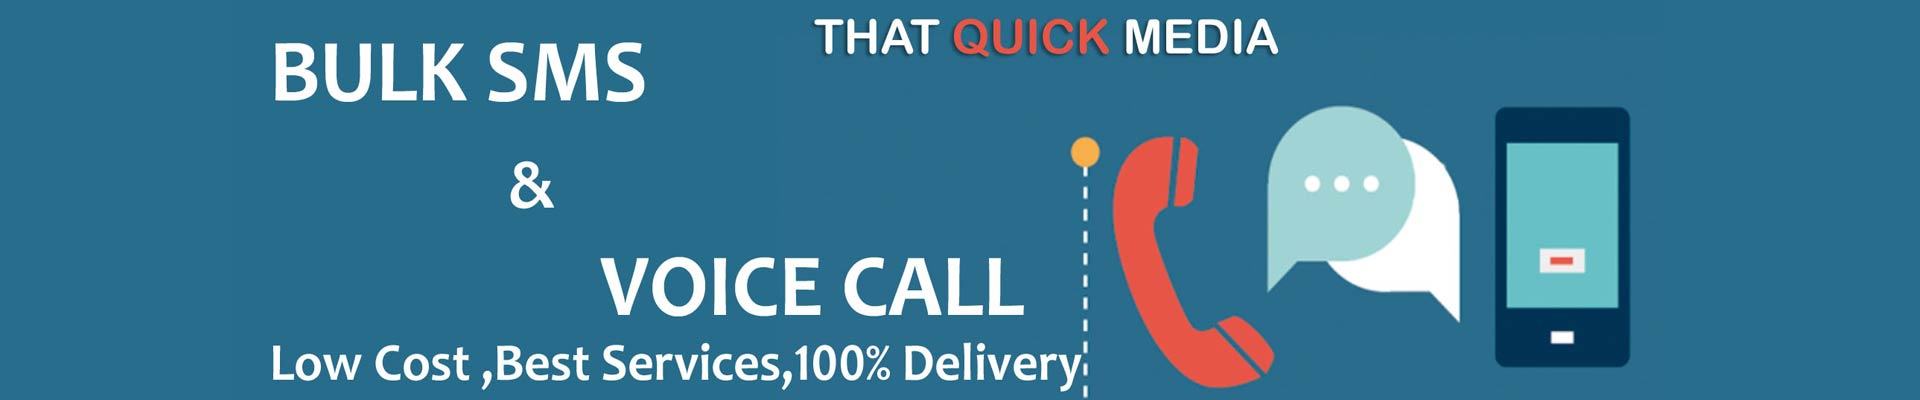 Bulk SMS & Voice Call Marketing